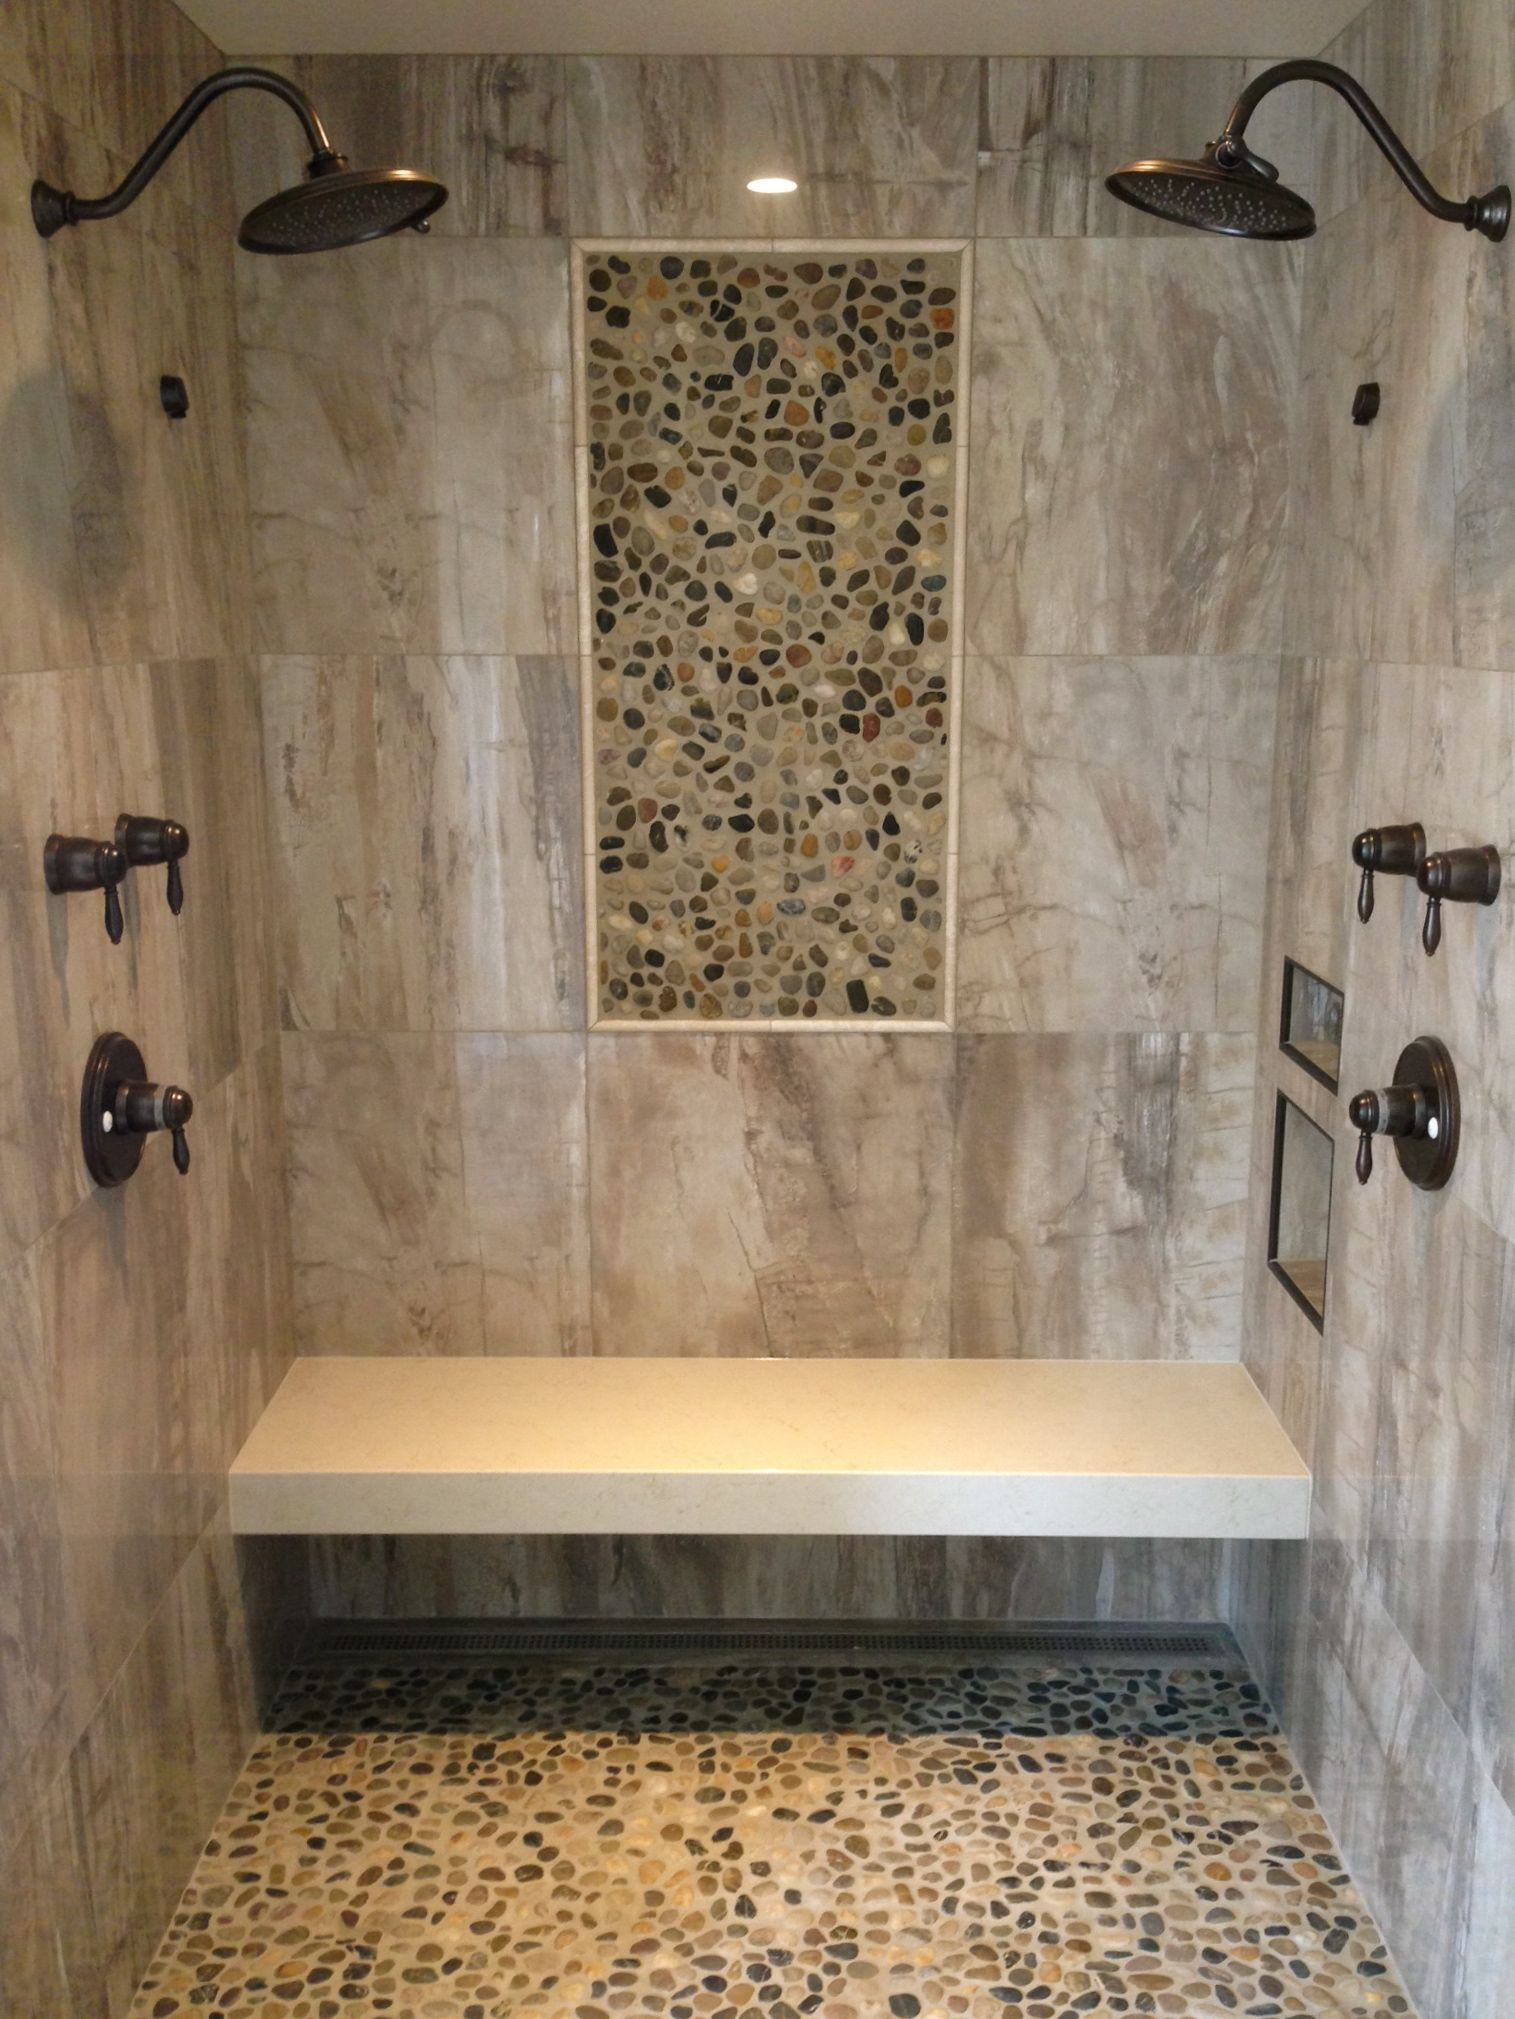 Barrier Free Shower Wall Tile 24 X Porcelain Pebble Mosaic Insert On Walls And Floor With Granite Bench